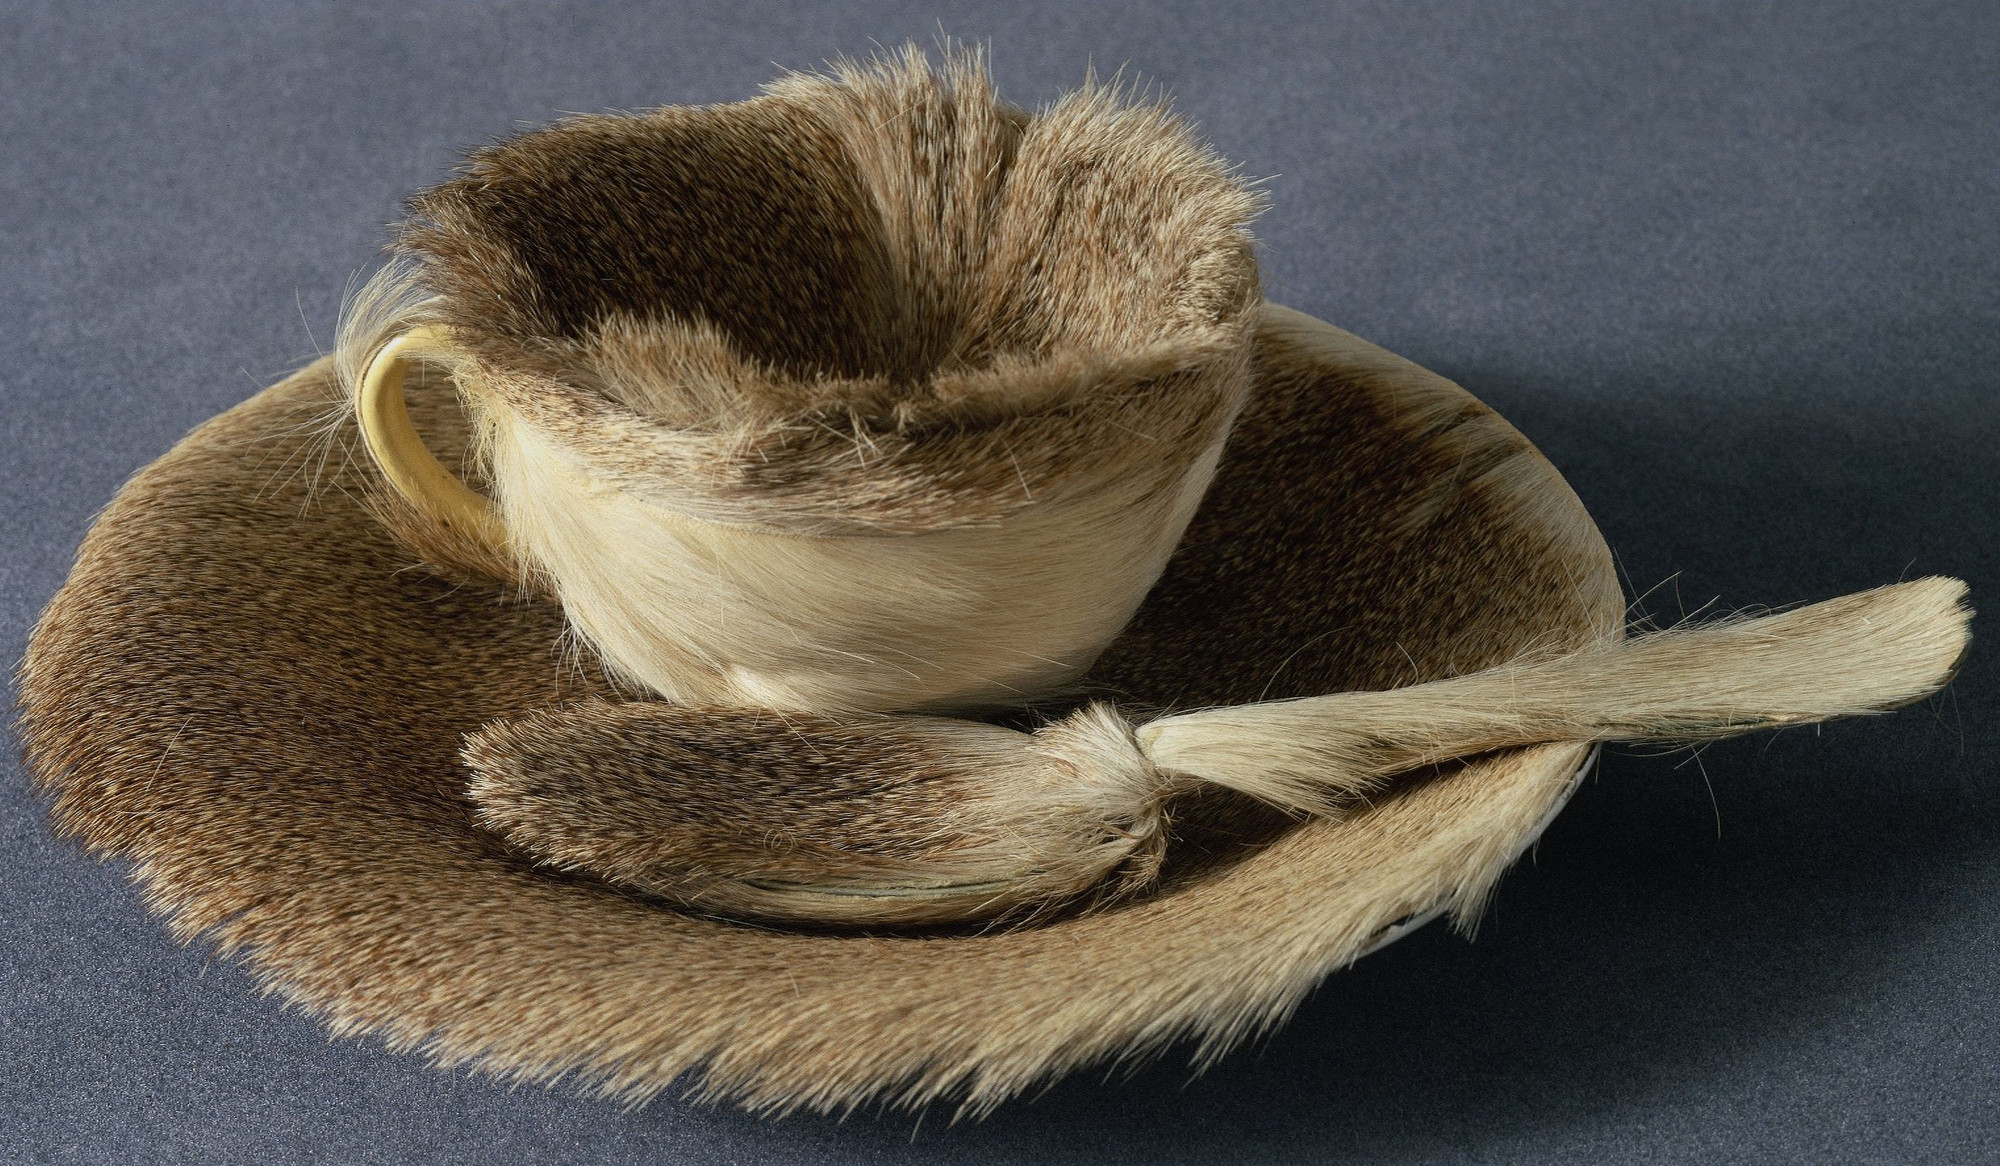 "Meret Oppenheim. Object. 1936. Fur-covered cup, saucer, and spoon, cup 4 3/8"" (10.9 cm) in diameter; saucer 9 3/8"" (23.7 cm) in diameter; spoon 8"" (20.2 cm) long, overall height 2 7/8"" (7.3 cm). Purchase. © 2009 Artists Rights Society (ARS), New York/Pro Litteris, Zurich"